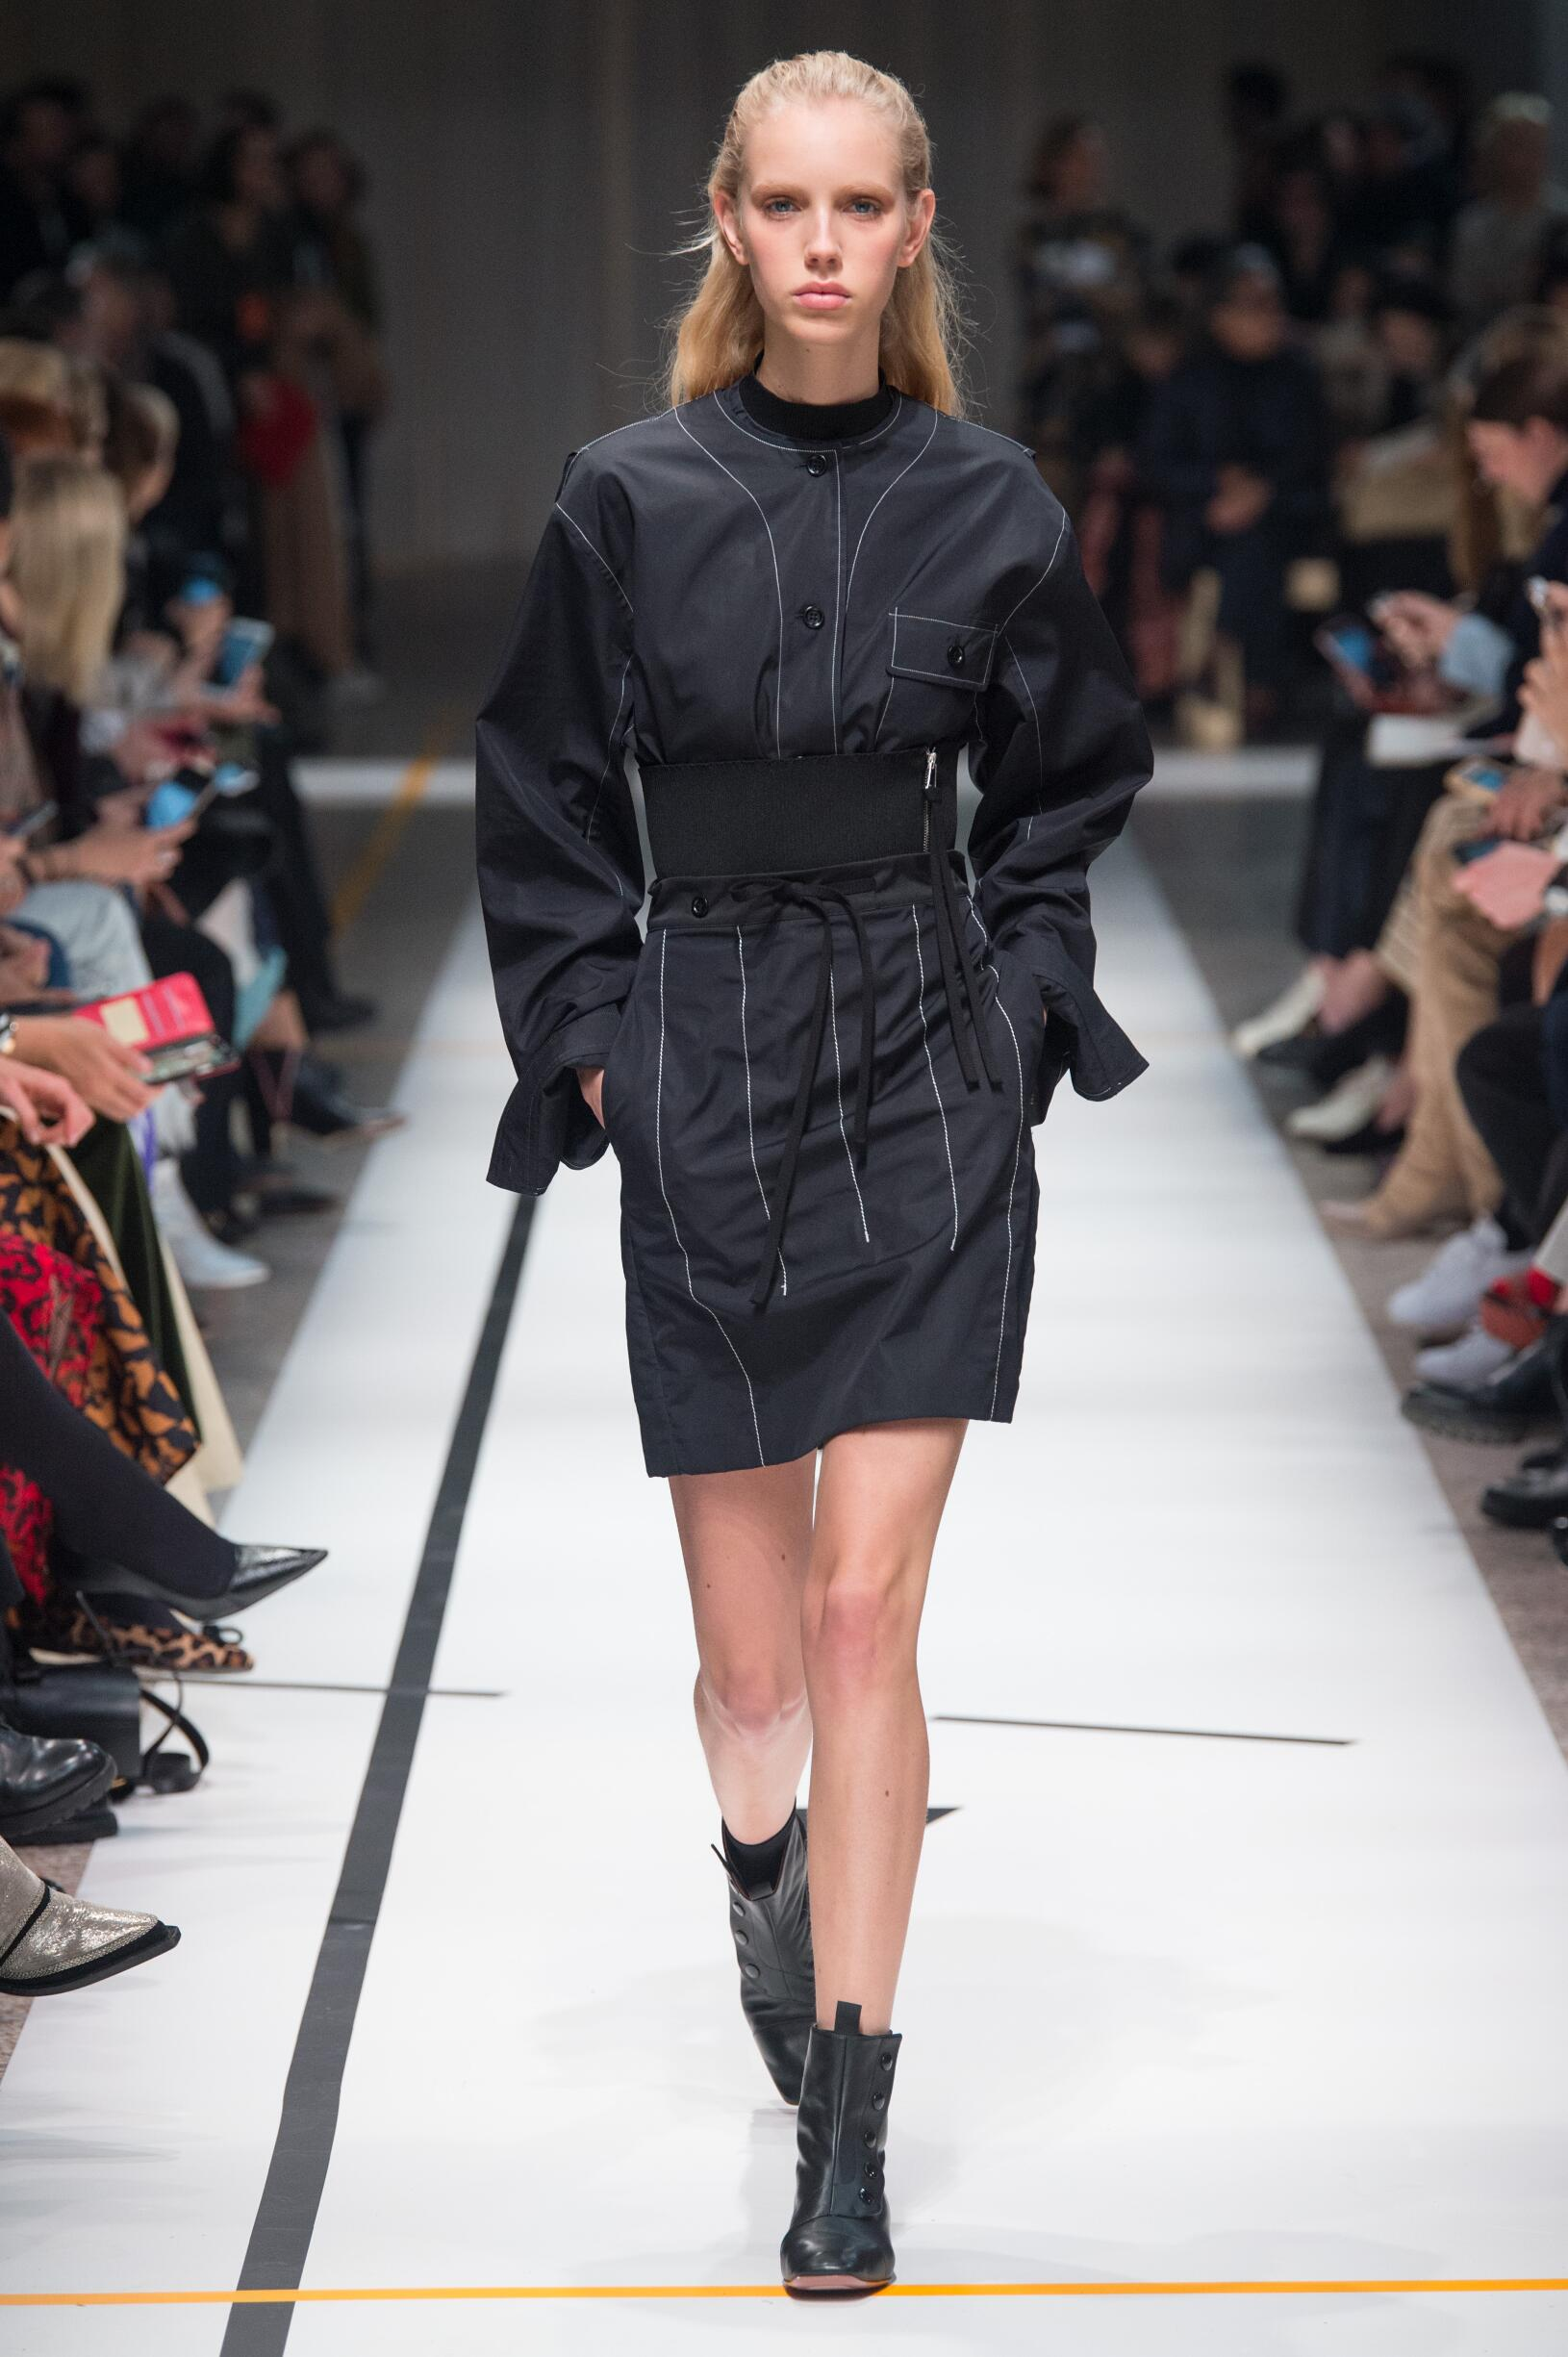 Fashion Woman Model Sportmax Catwalk